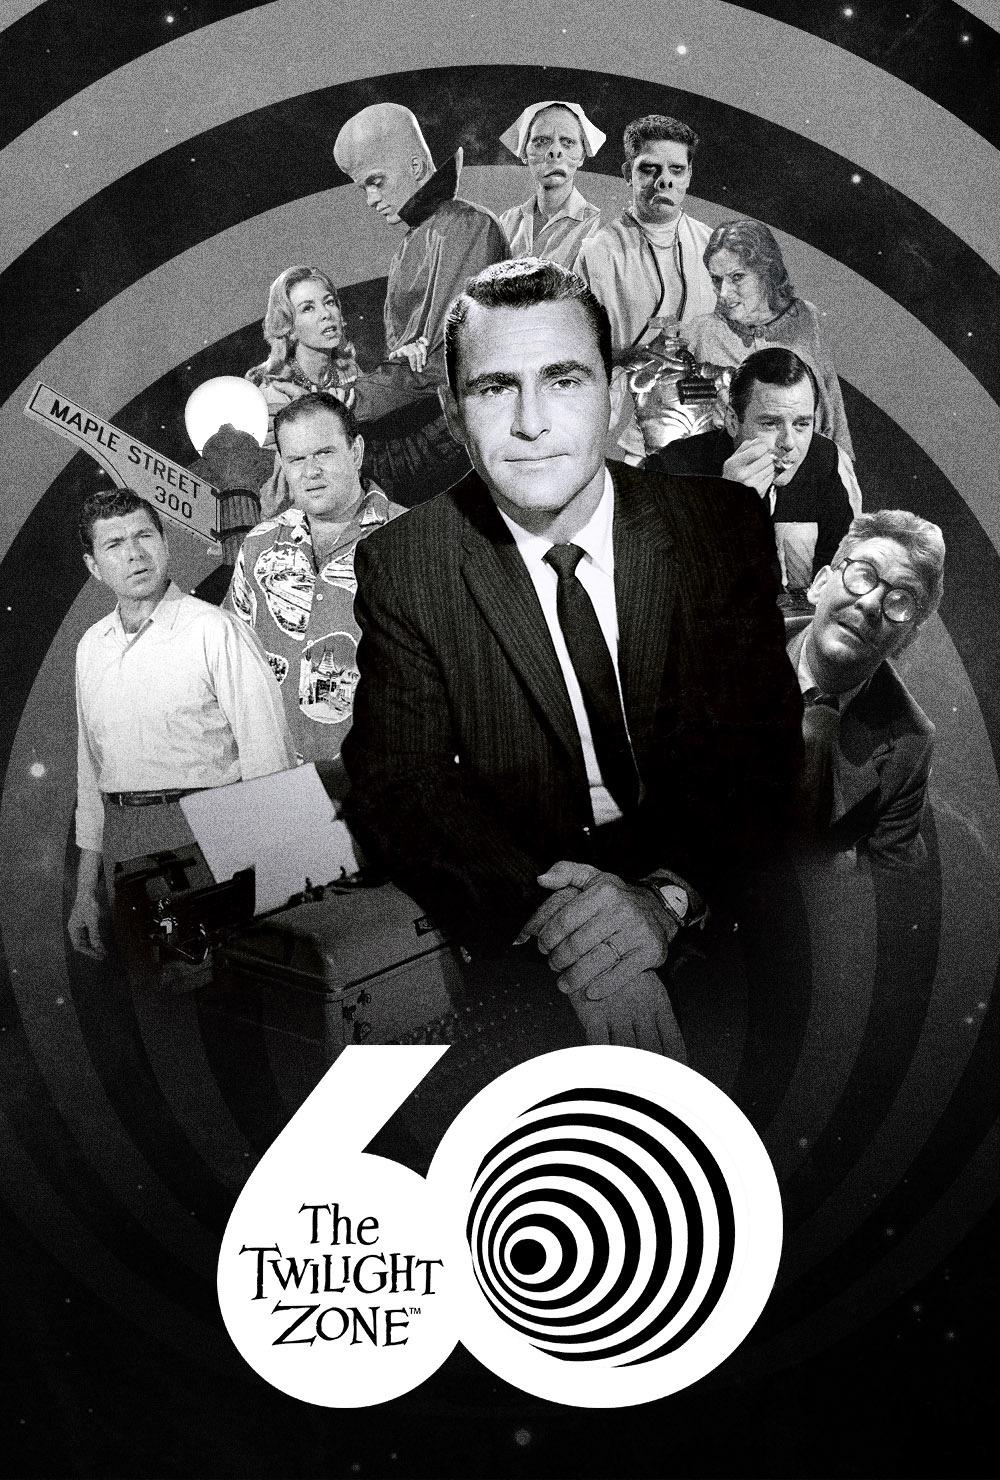 The Twilight Zone: A 60th Anniversary Celebration